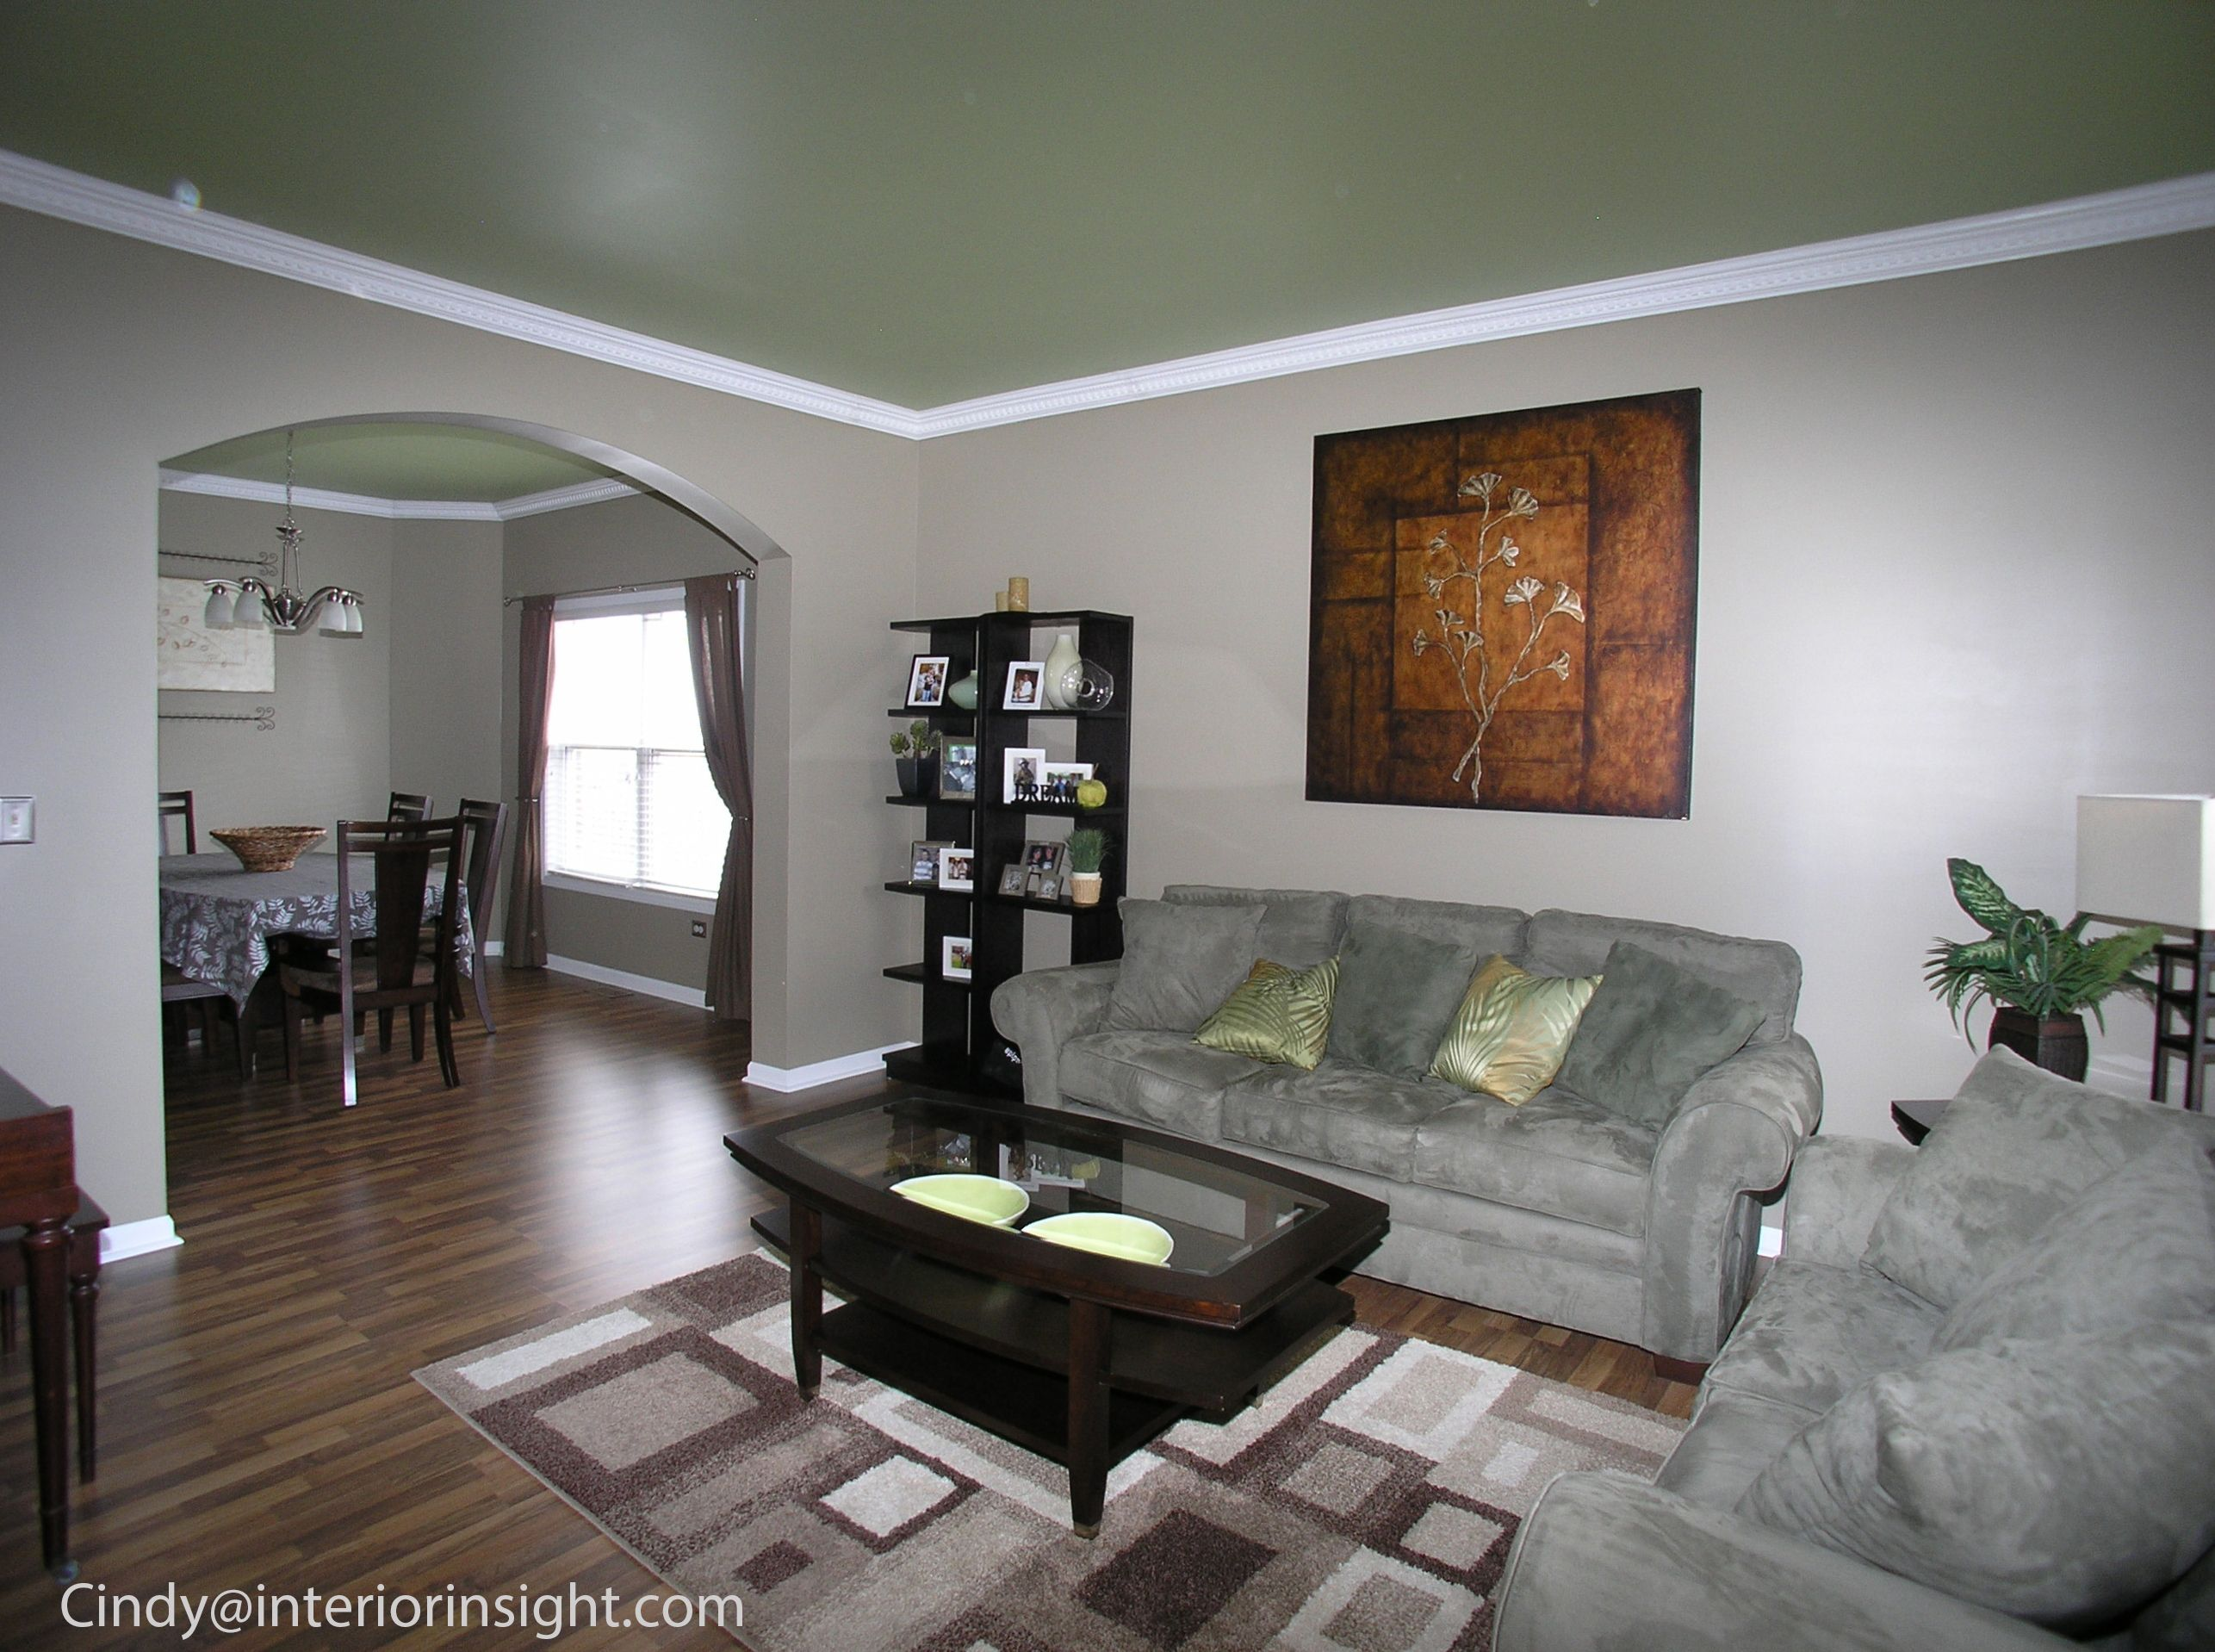 Bright Bold Green Ceilings Play Off The Light Grey Walls